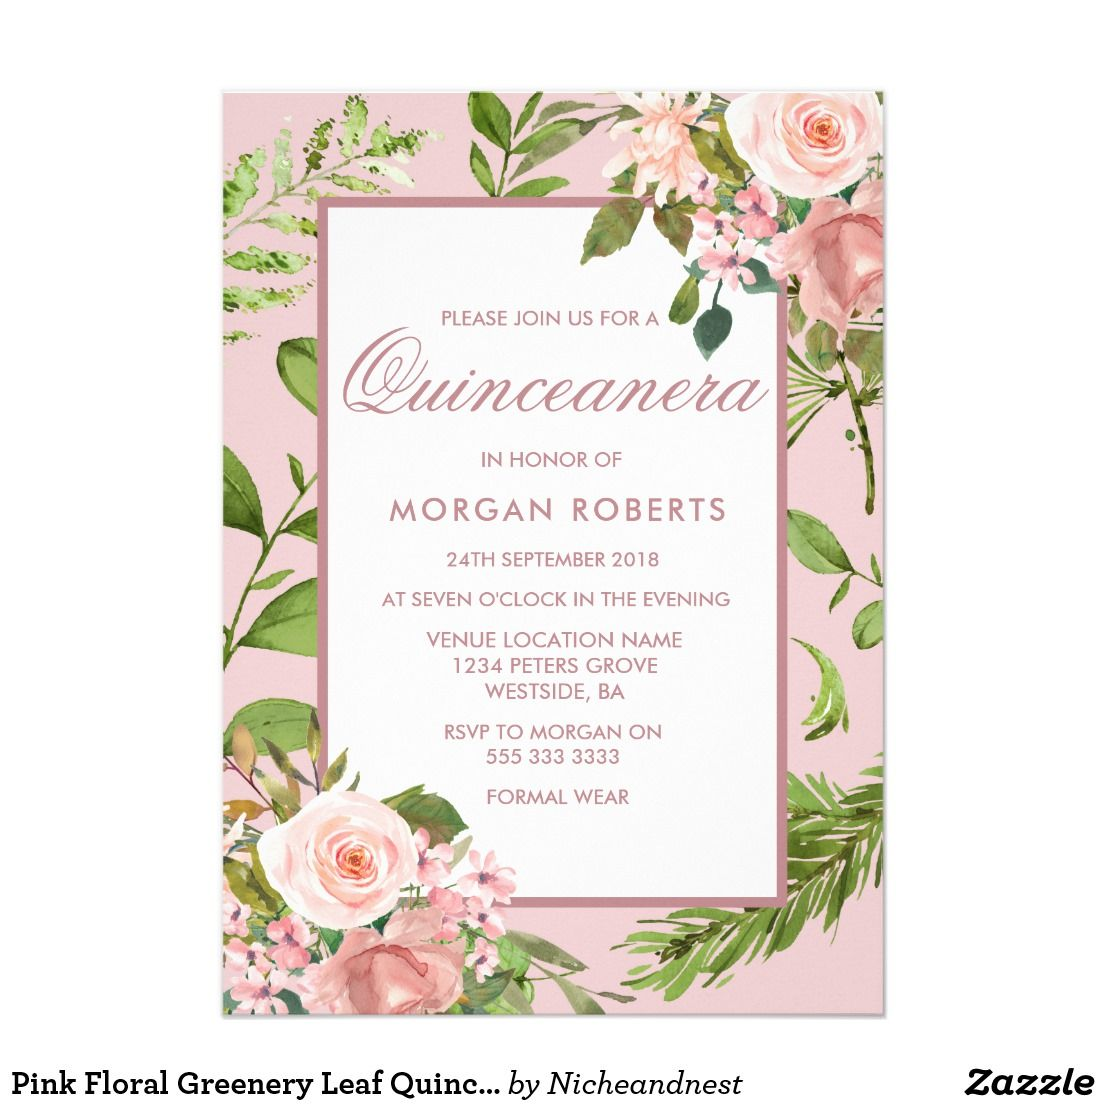 Pink floral greenery leaf quinceanera invitation in loving memory